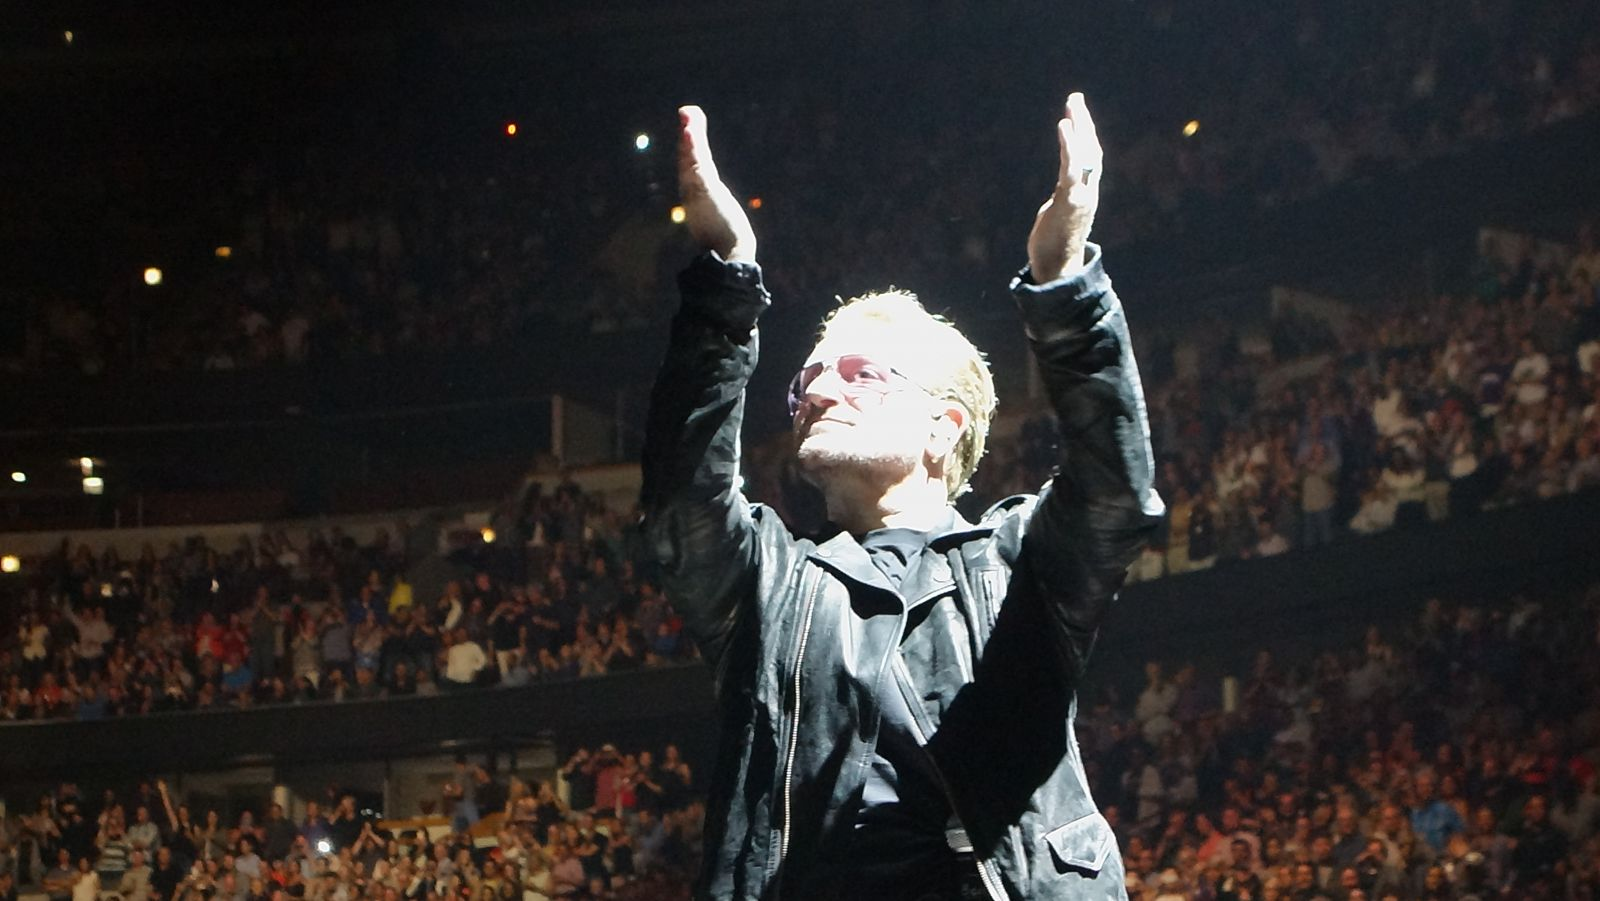 U2ieTour 2015 CHI-5 Last Night in Chicago